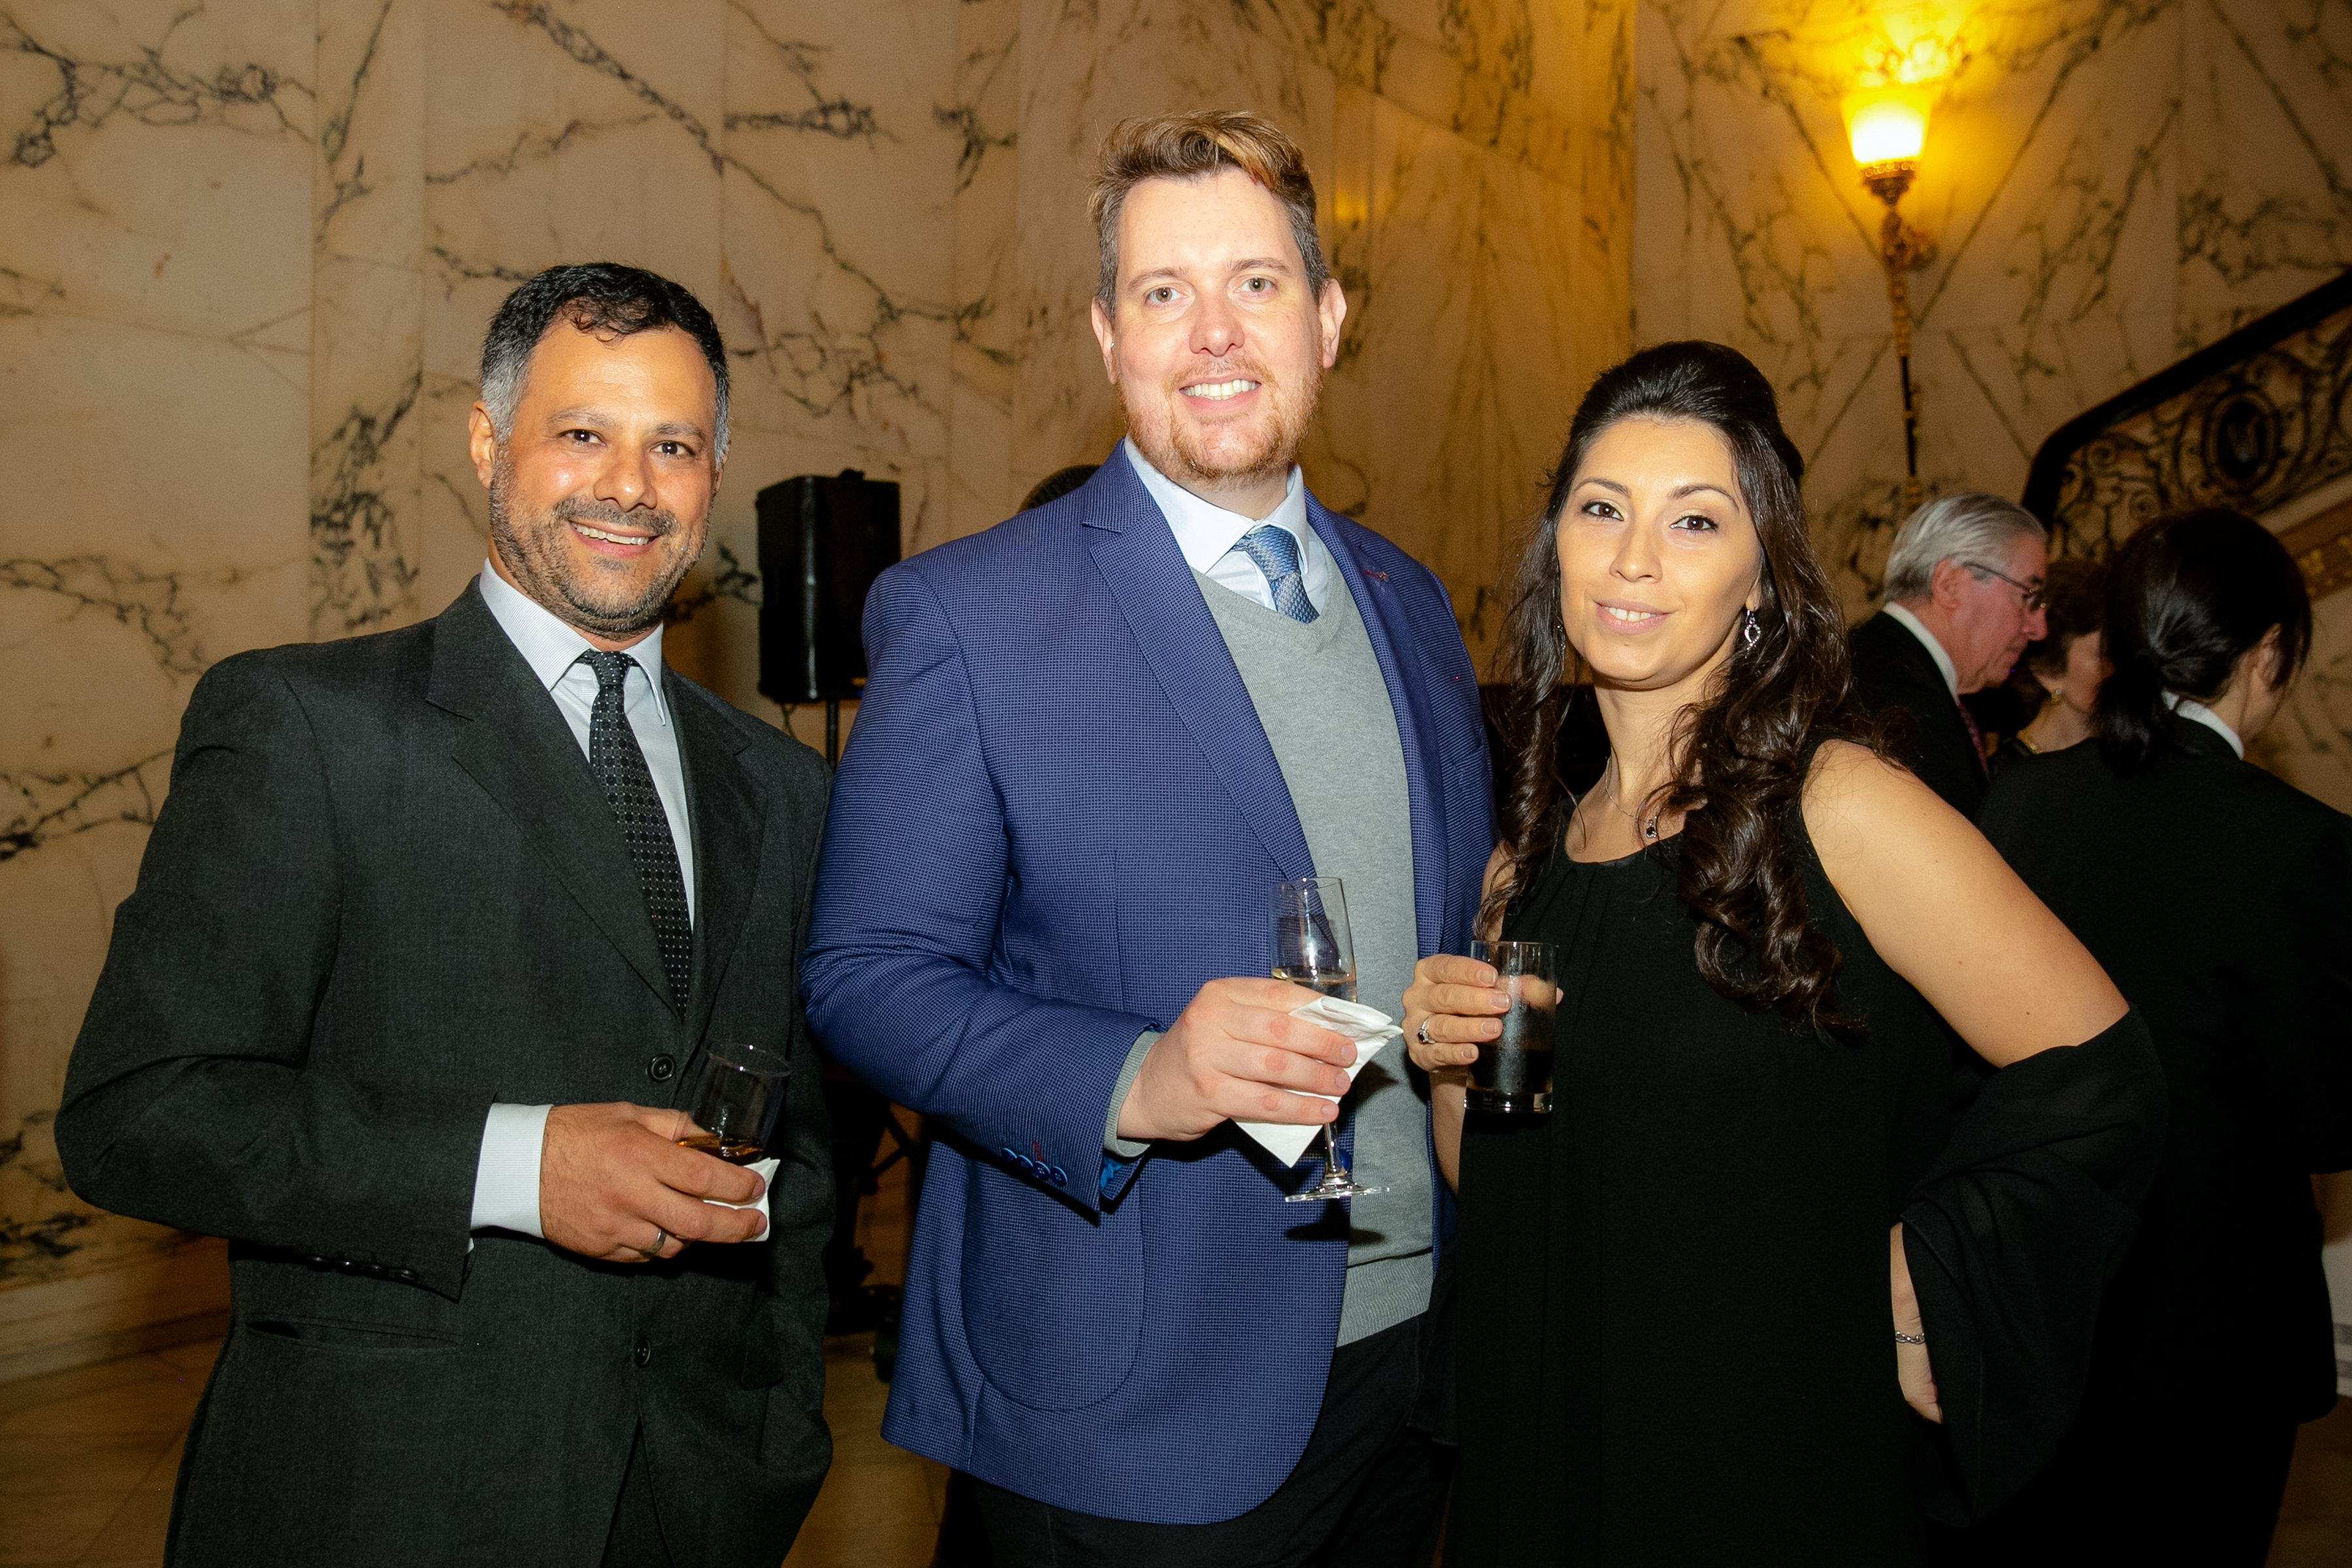 Three people smiling and holding glasses at the 2019 Gala